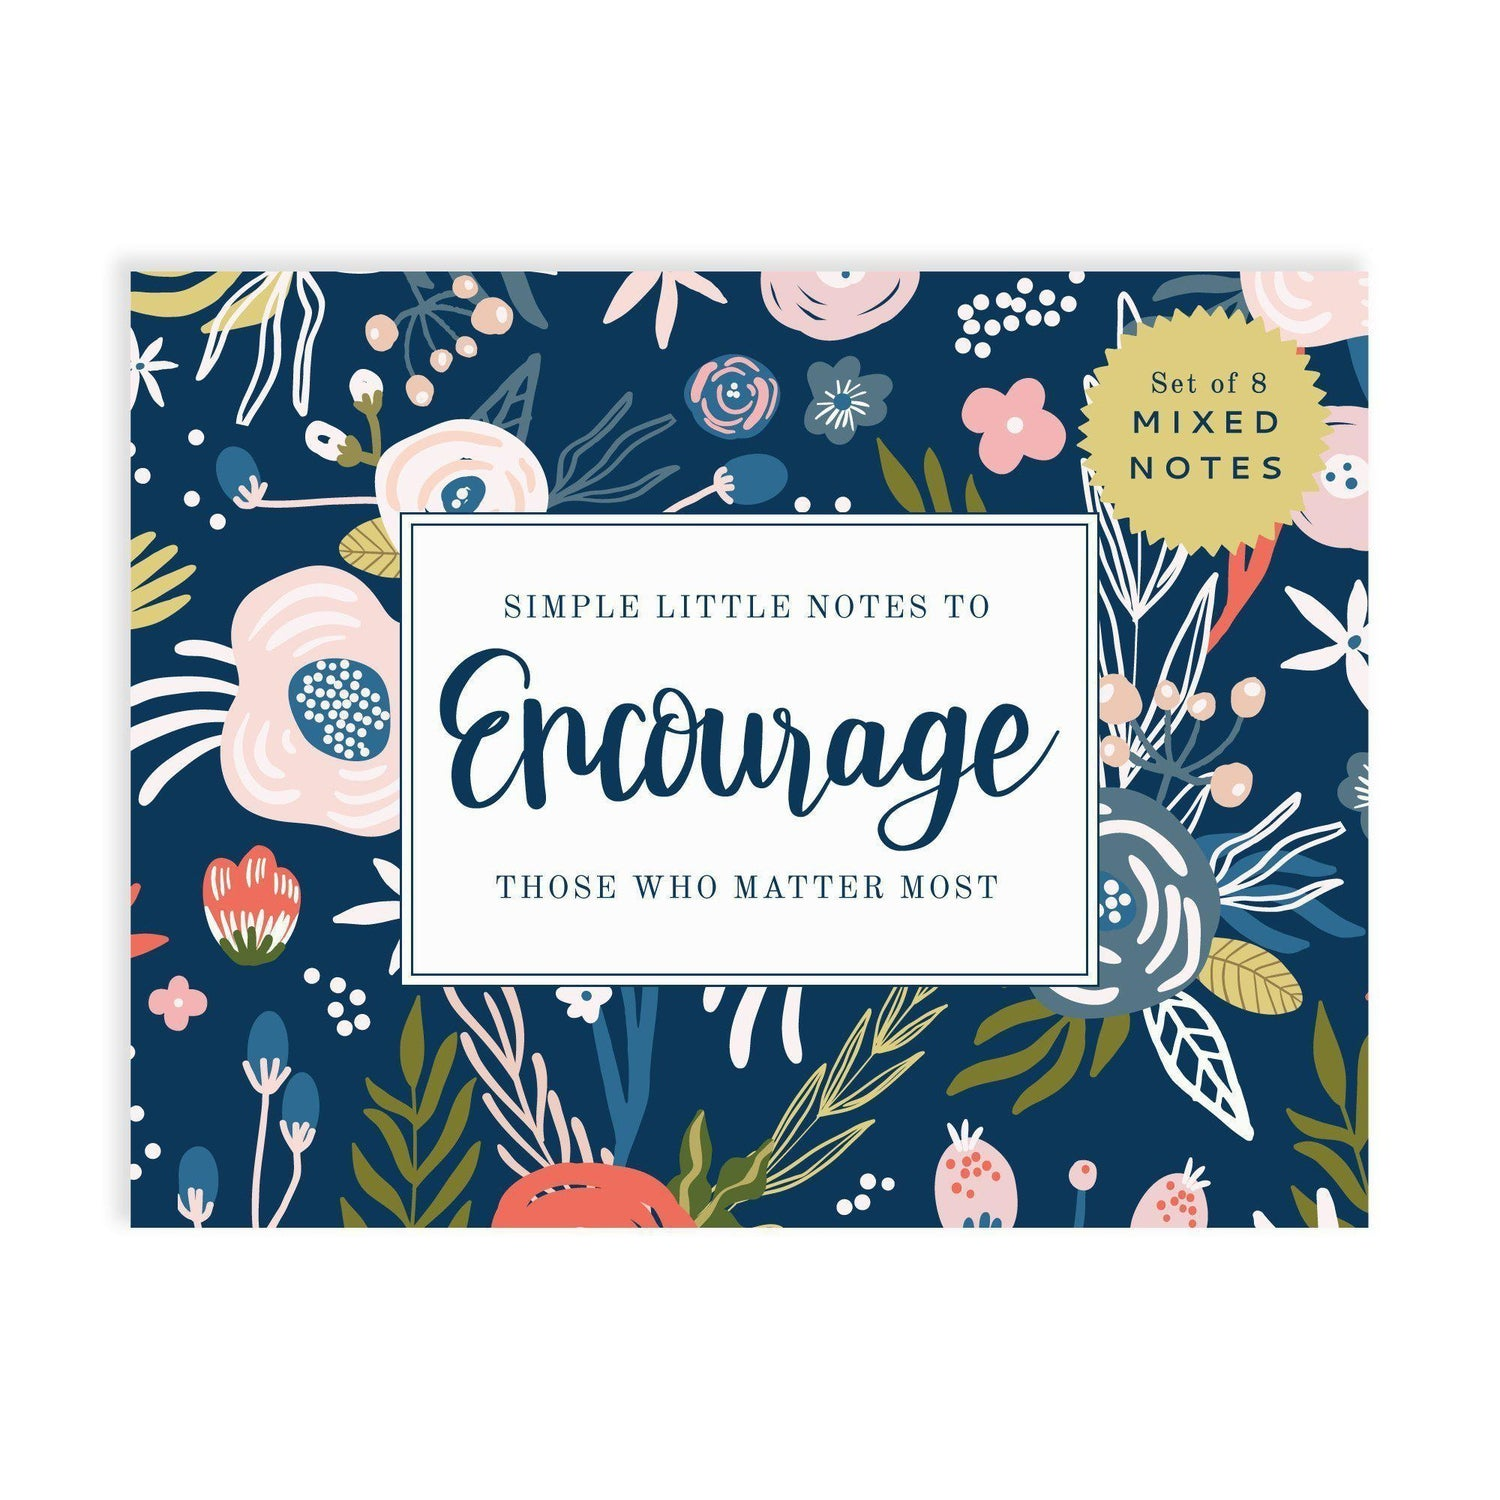 Encouragement notecard set from Muscadine Press.